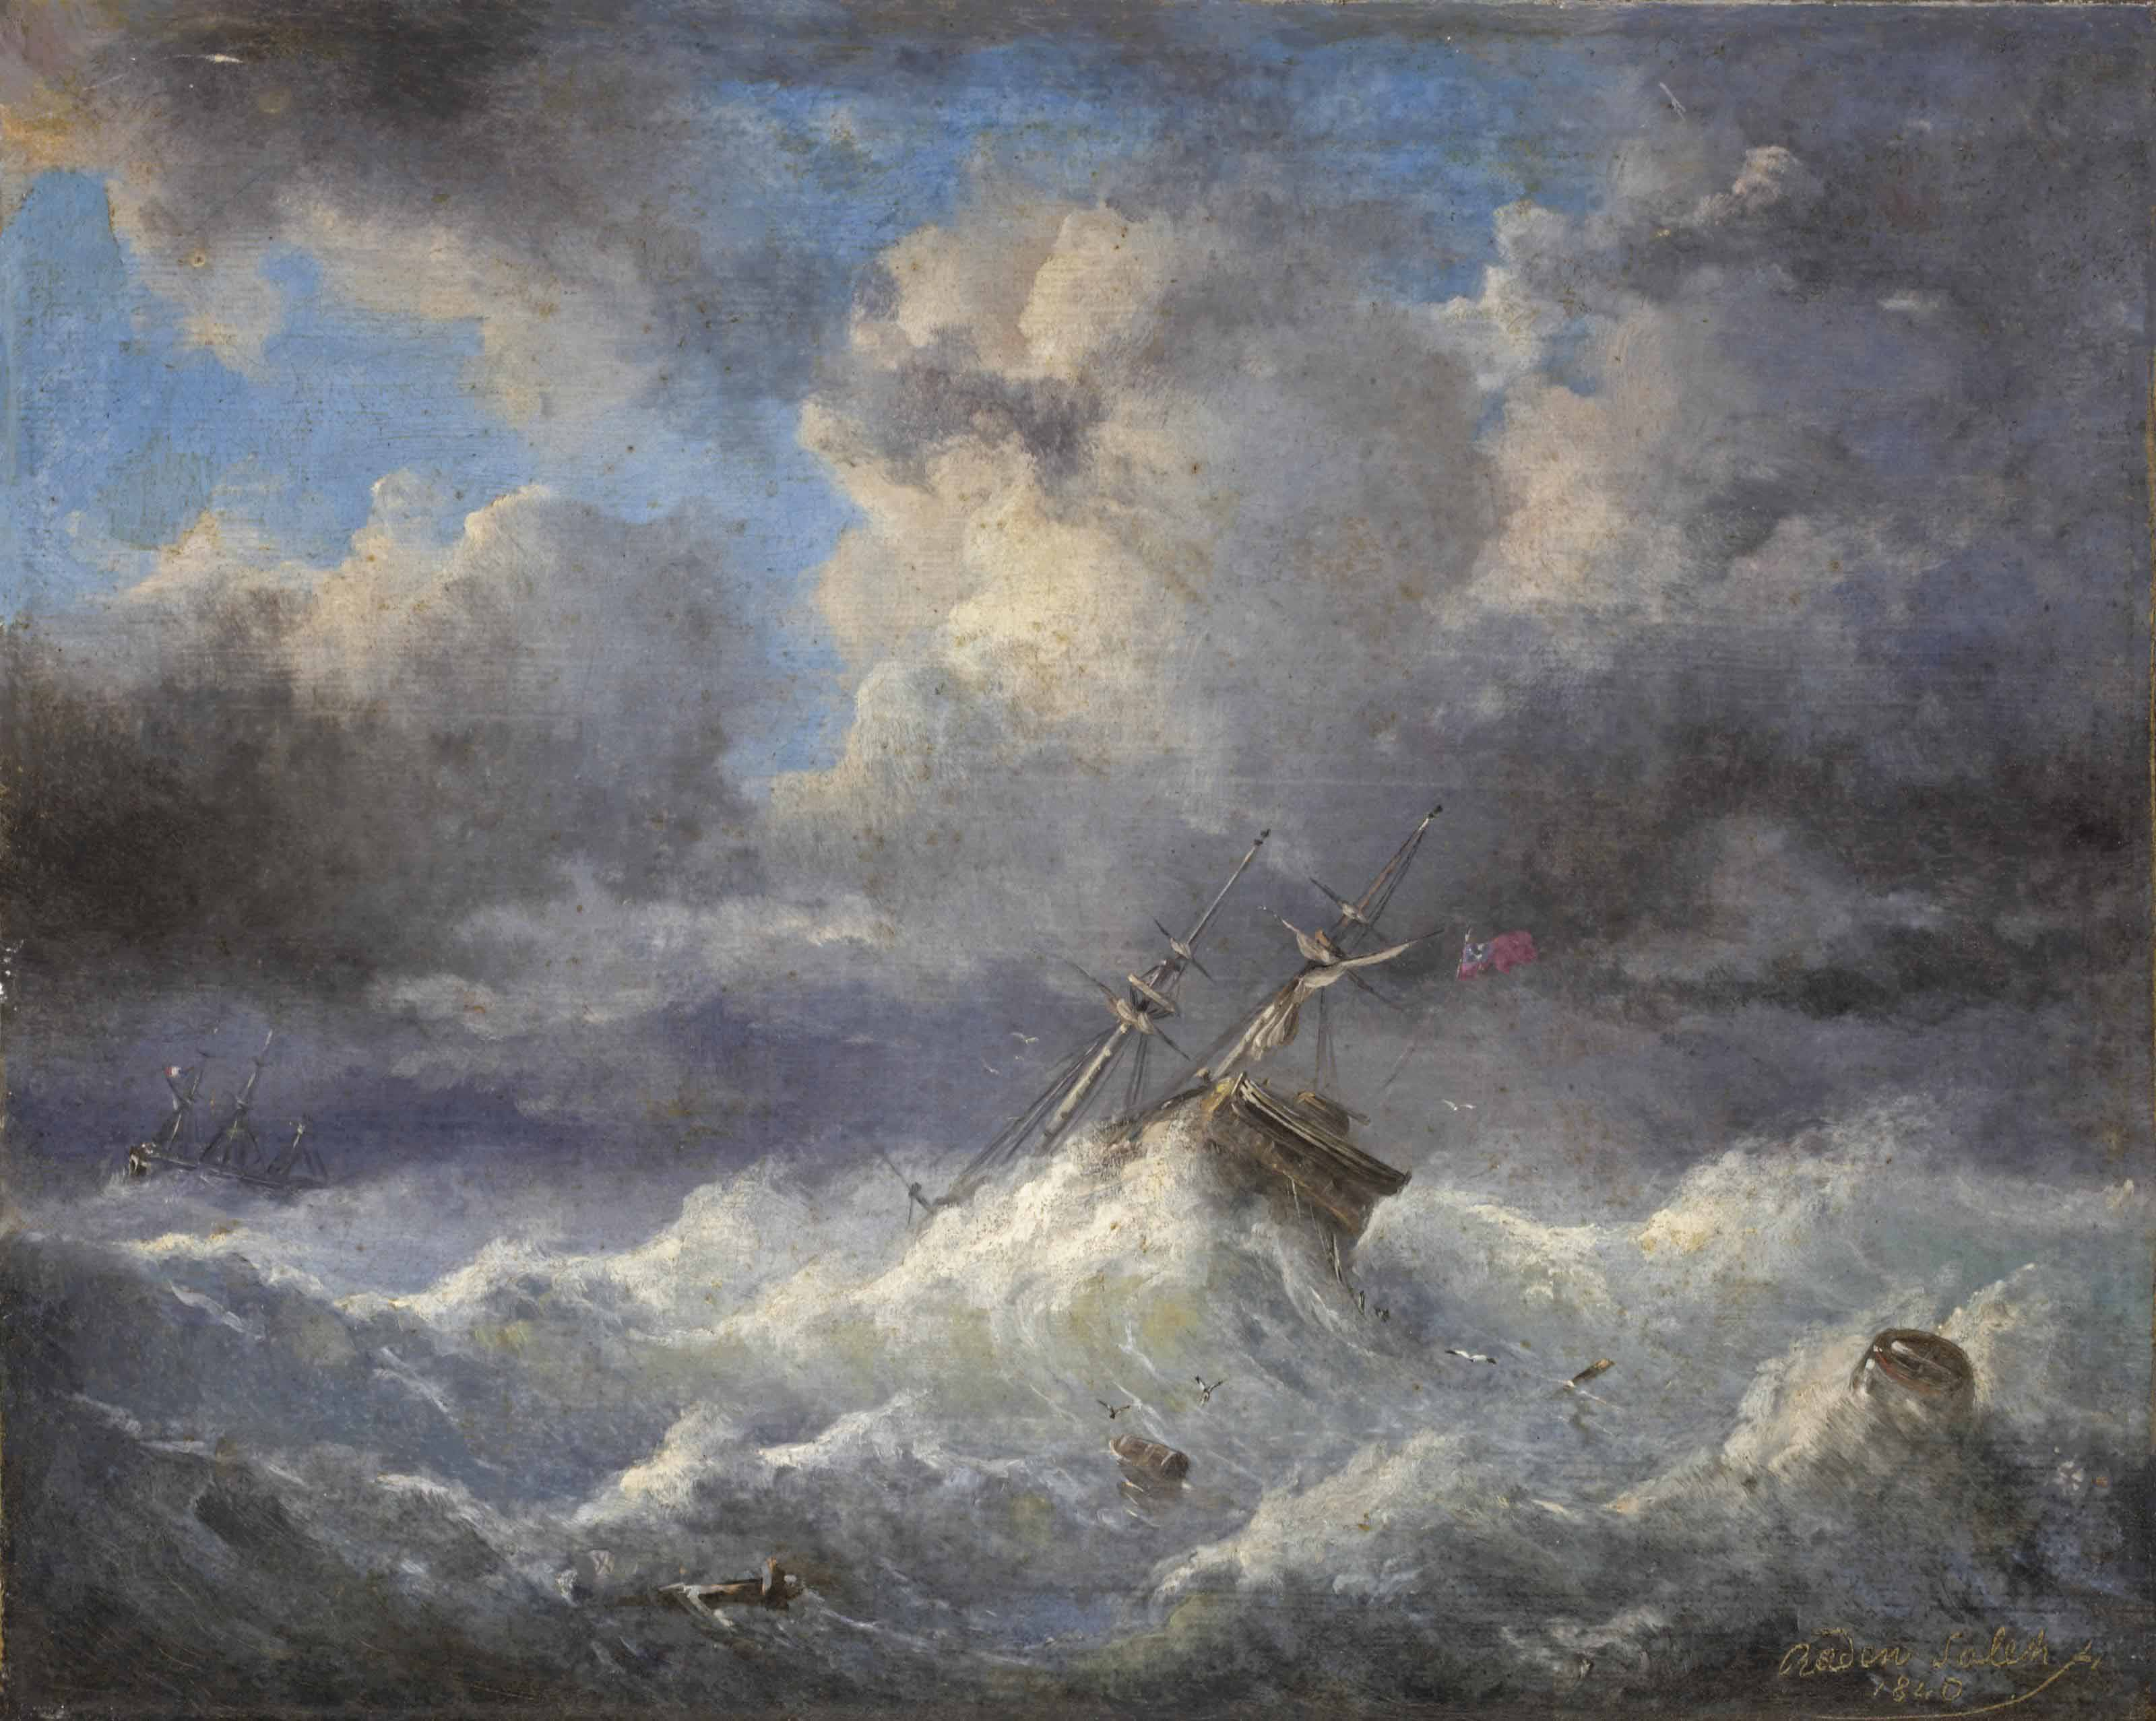 British marine vessel in heavy weather